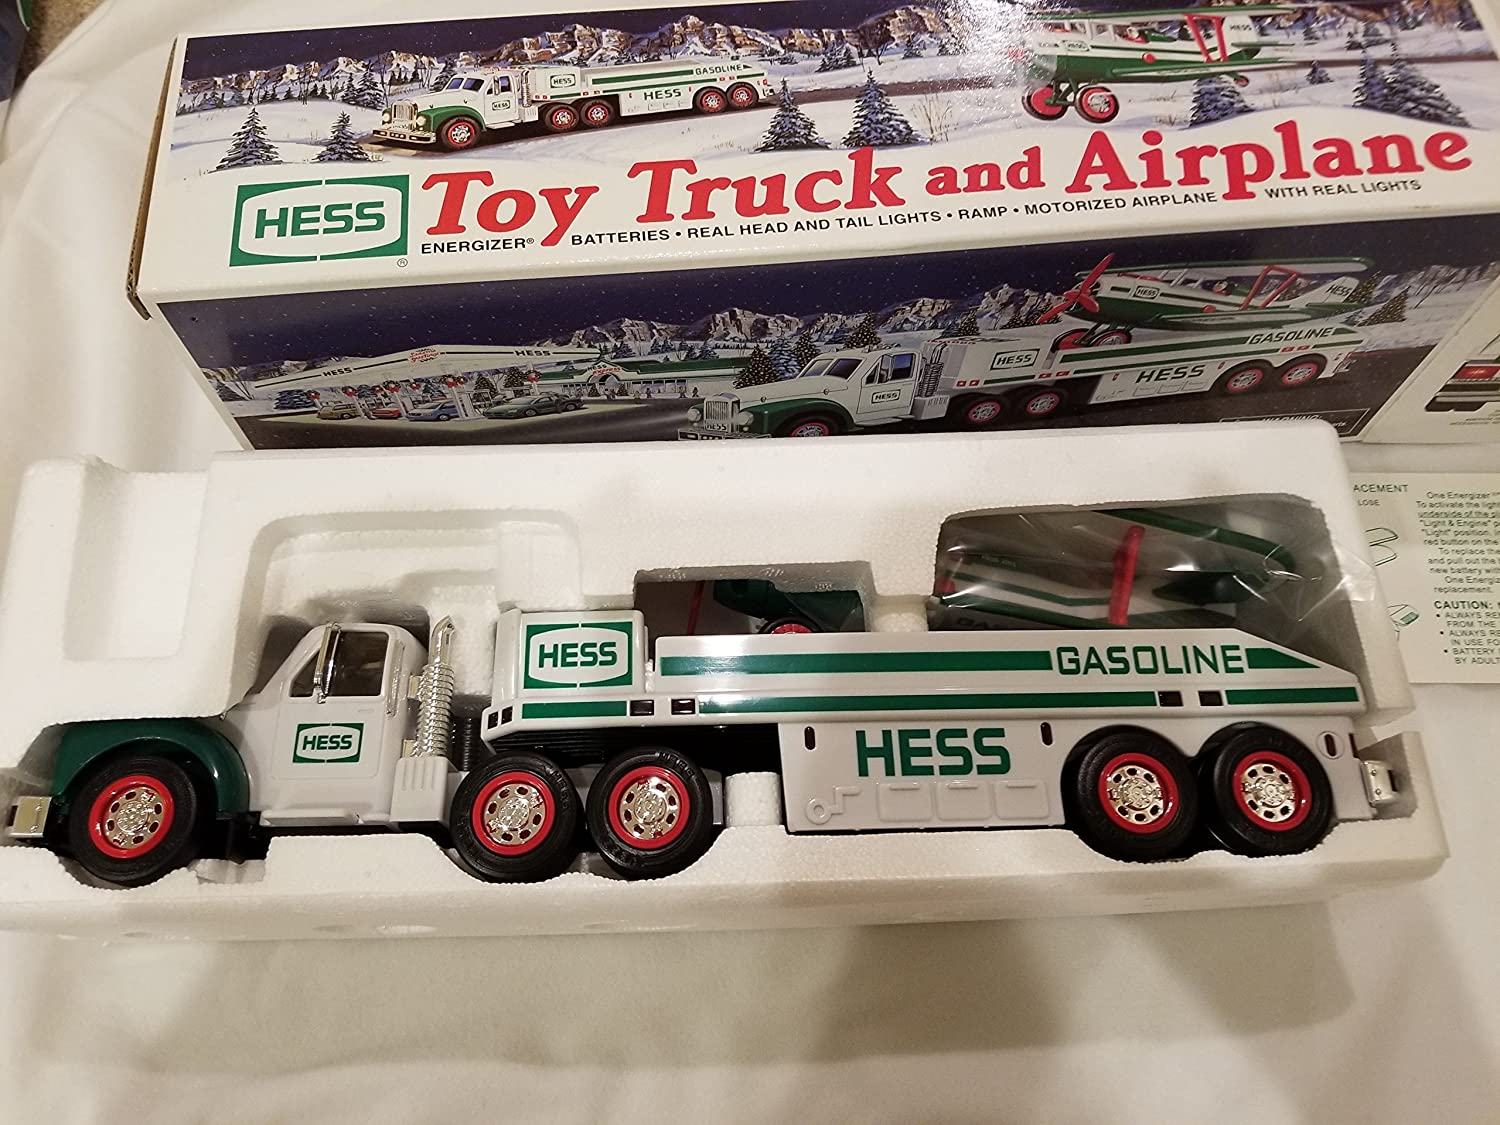 in original box. New 2002 Hess Truck Toy Truck and Airplane